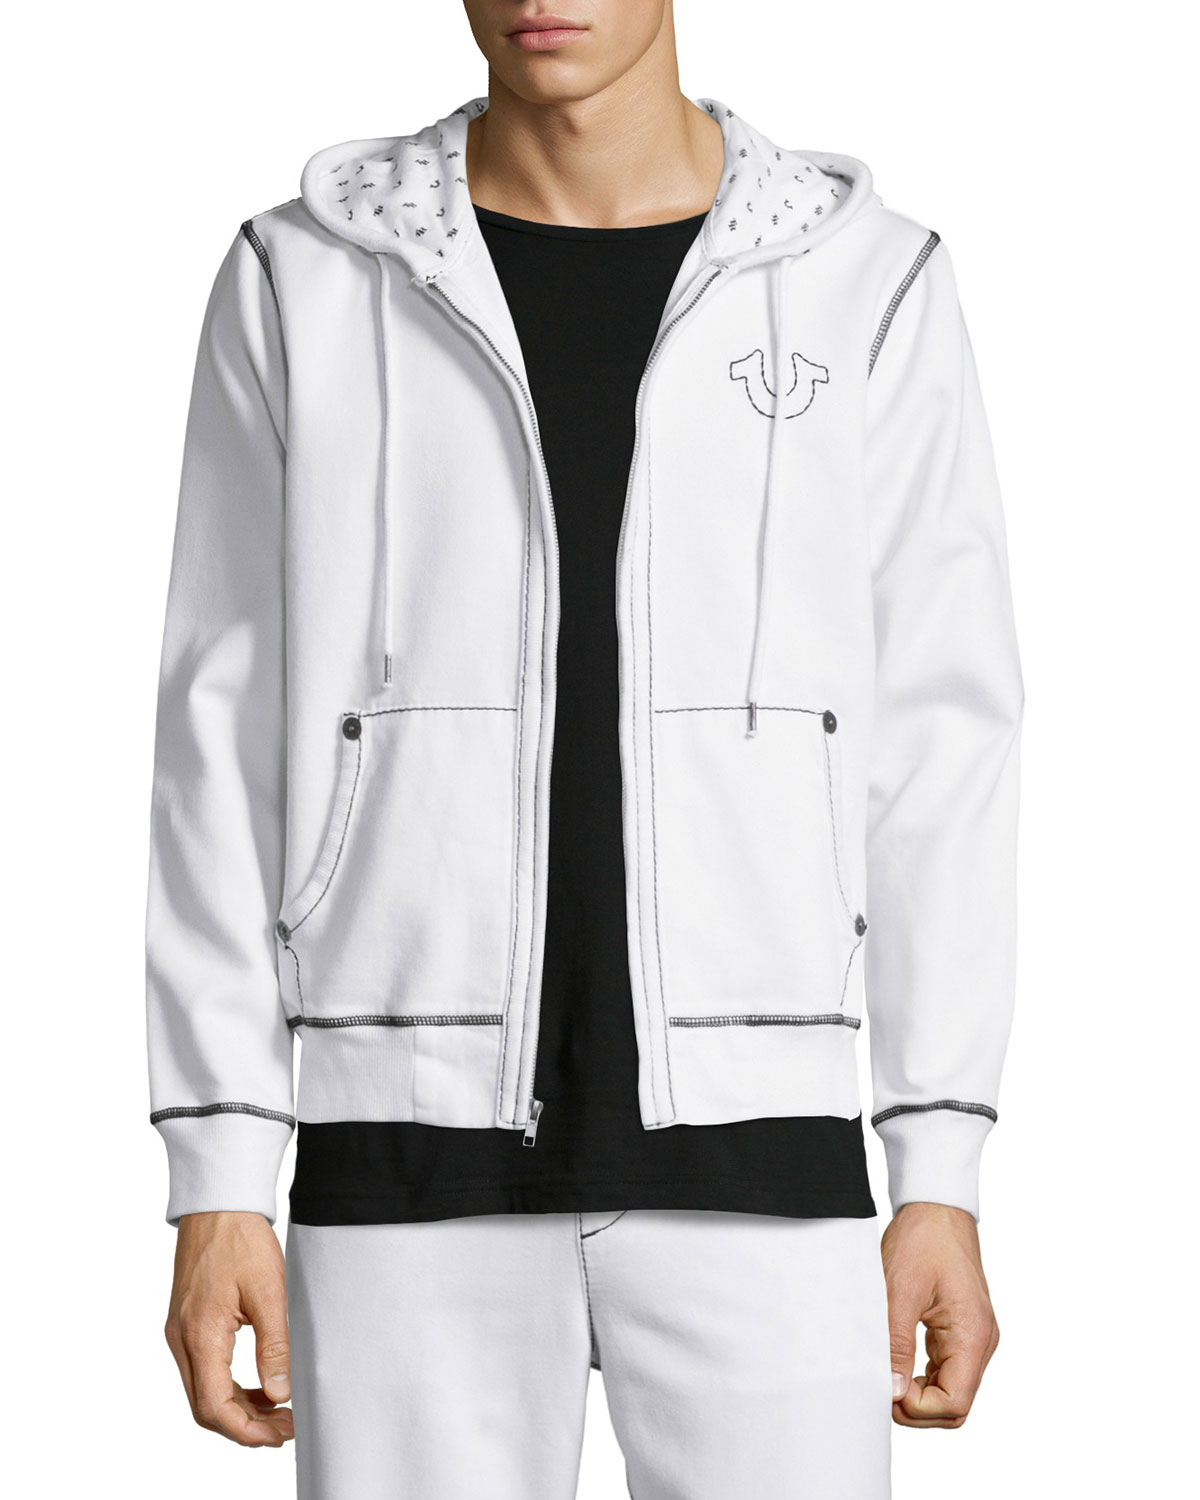 true religion contrast stitching knit hoodie in white for men lyst. Black Bedroom Furniture Sets. Home Design Ideas